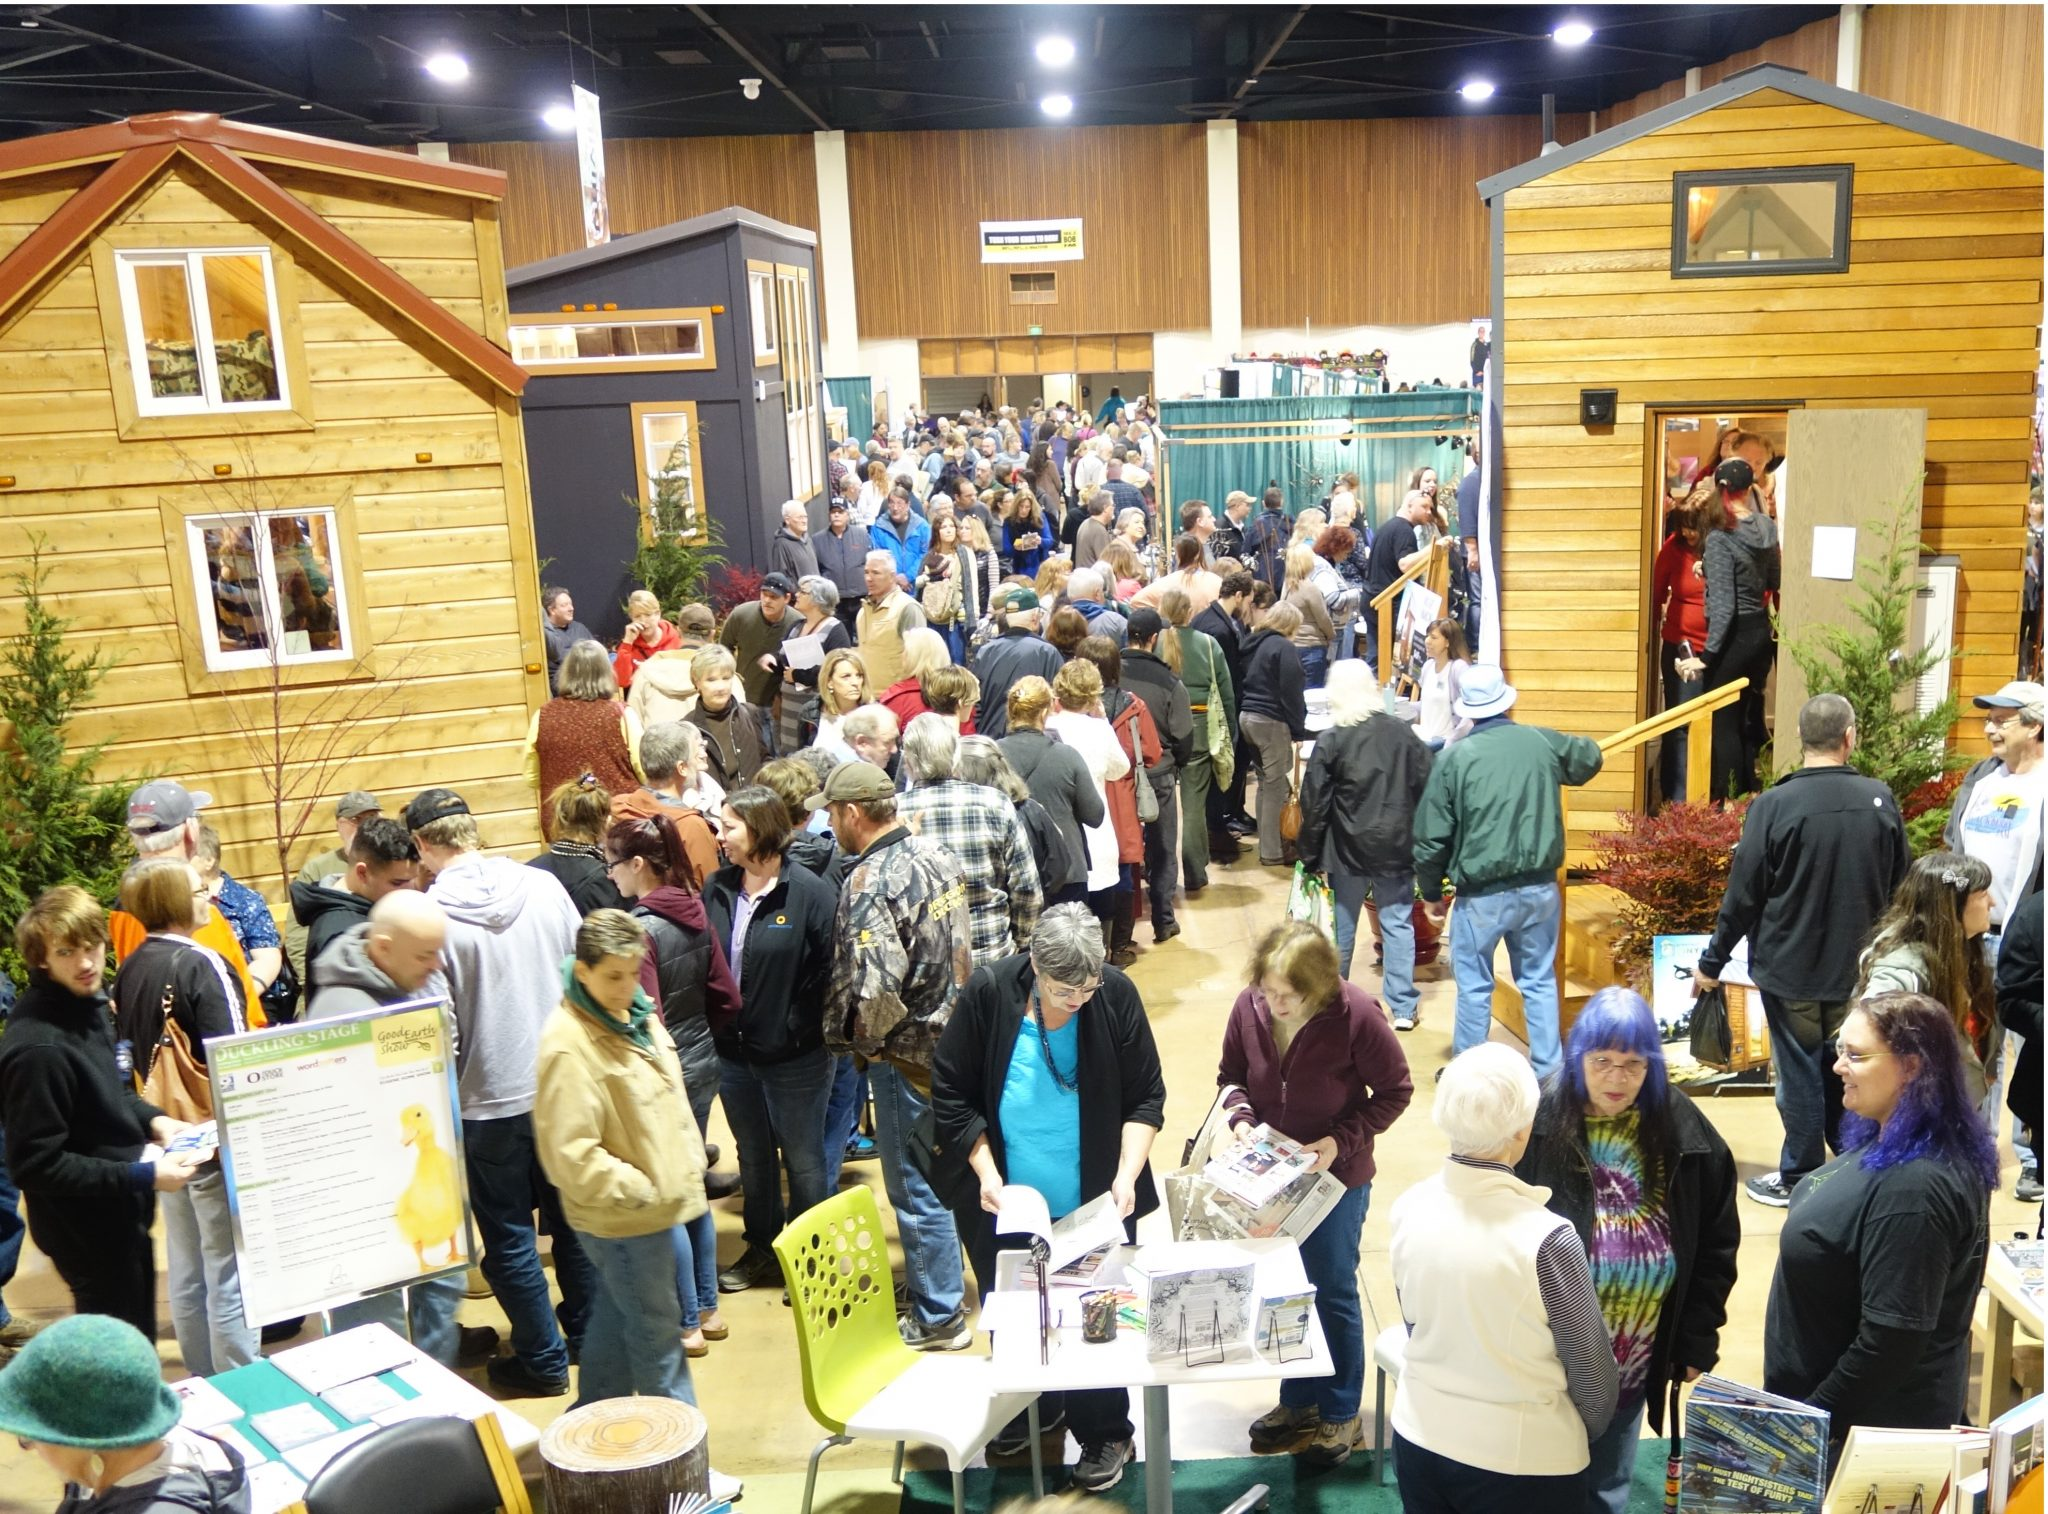 The Good Earth Home, Garden, U0026 Living Show Was The First Sustainable Home  And Garden Show In North America. This Regional Event Presents Over 220  Smart ...